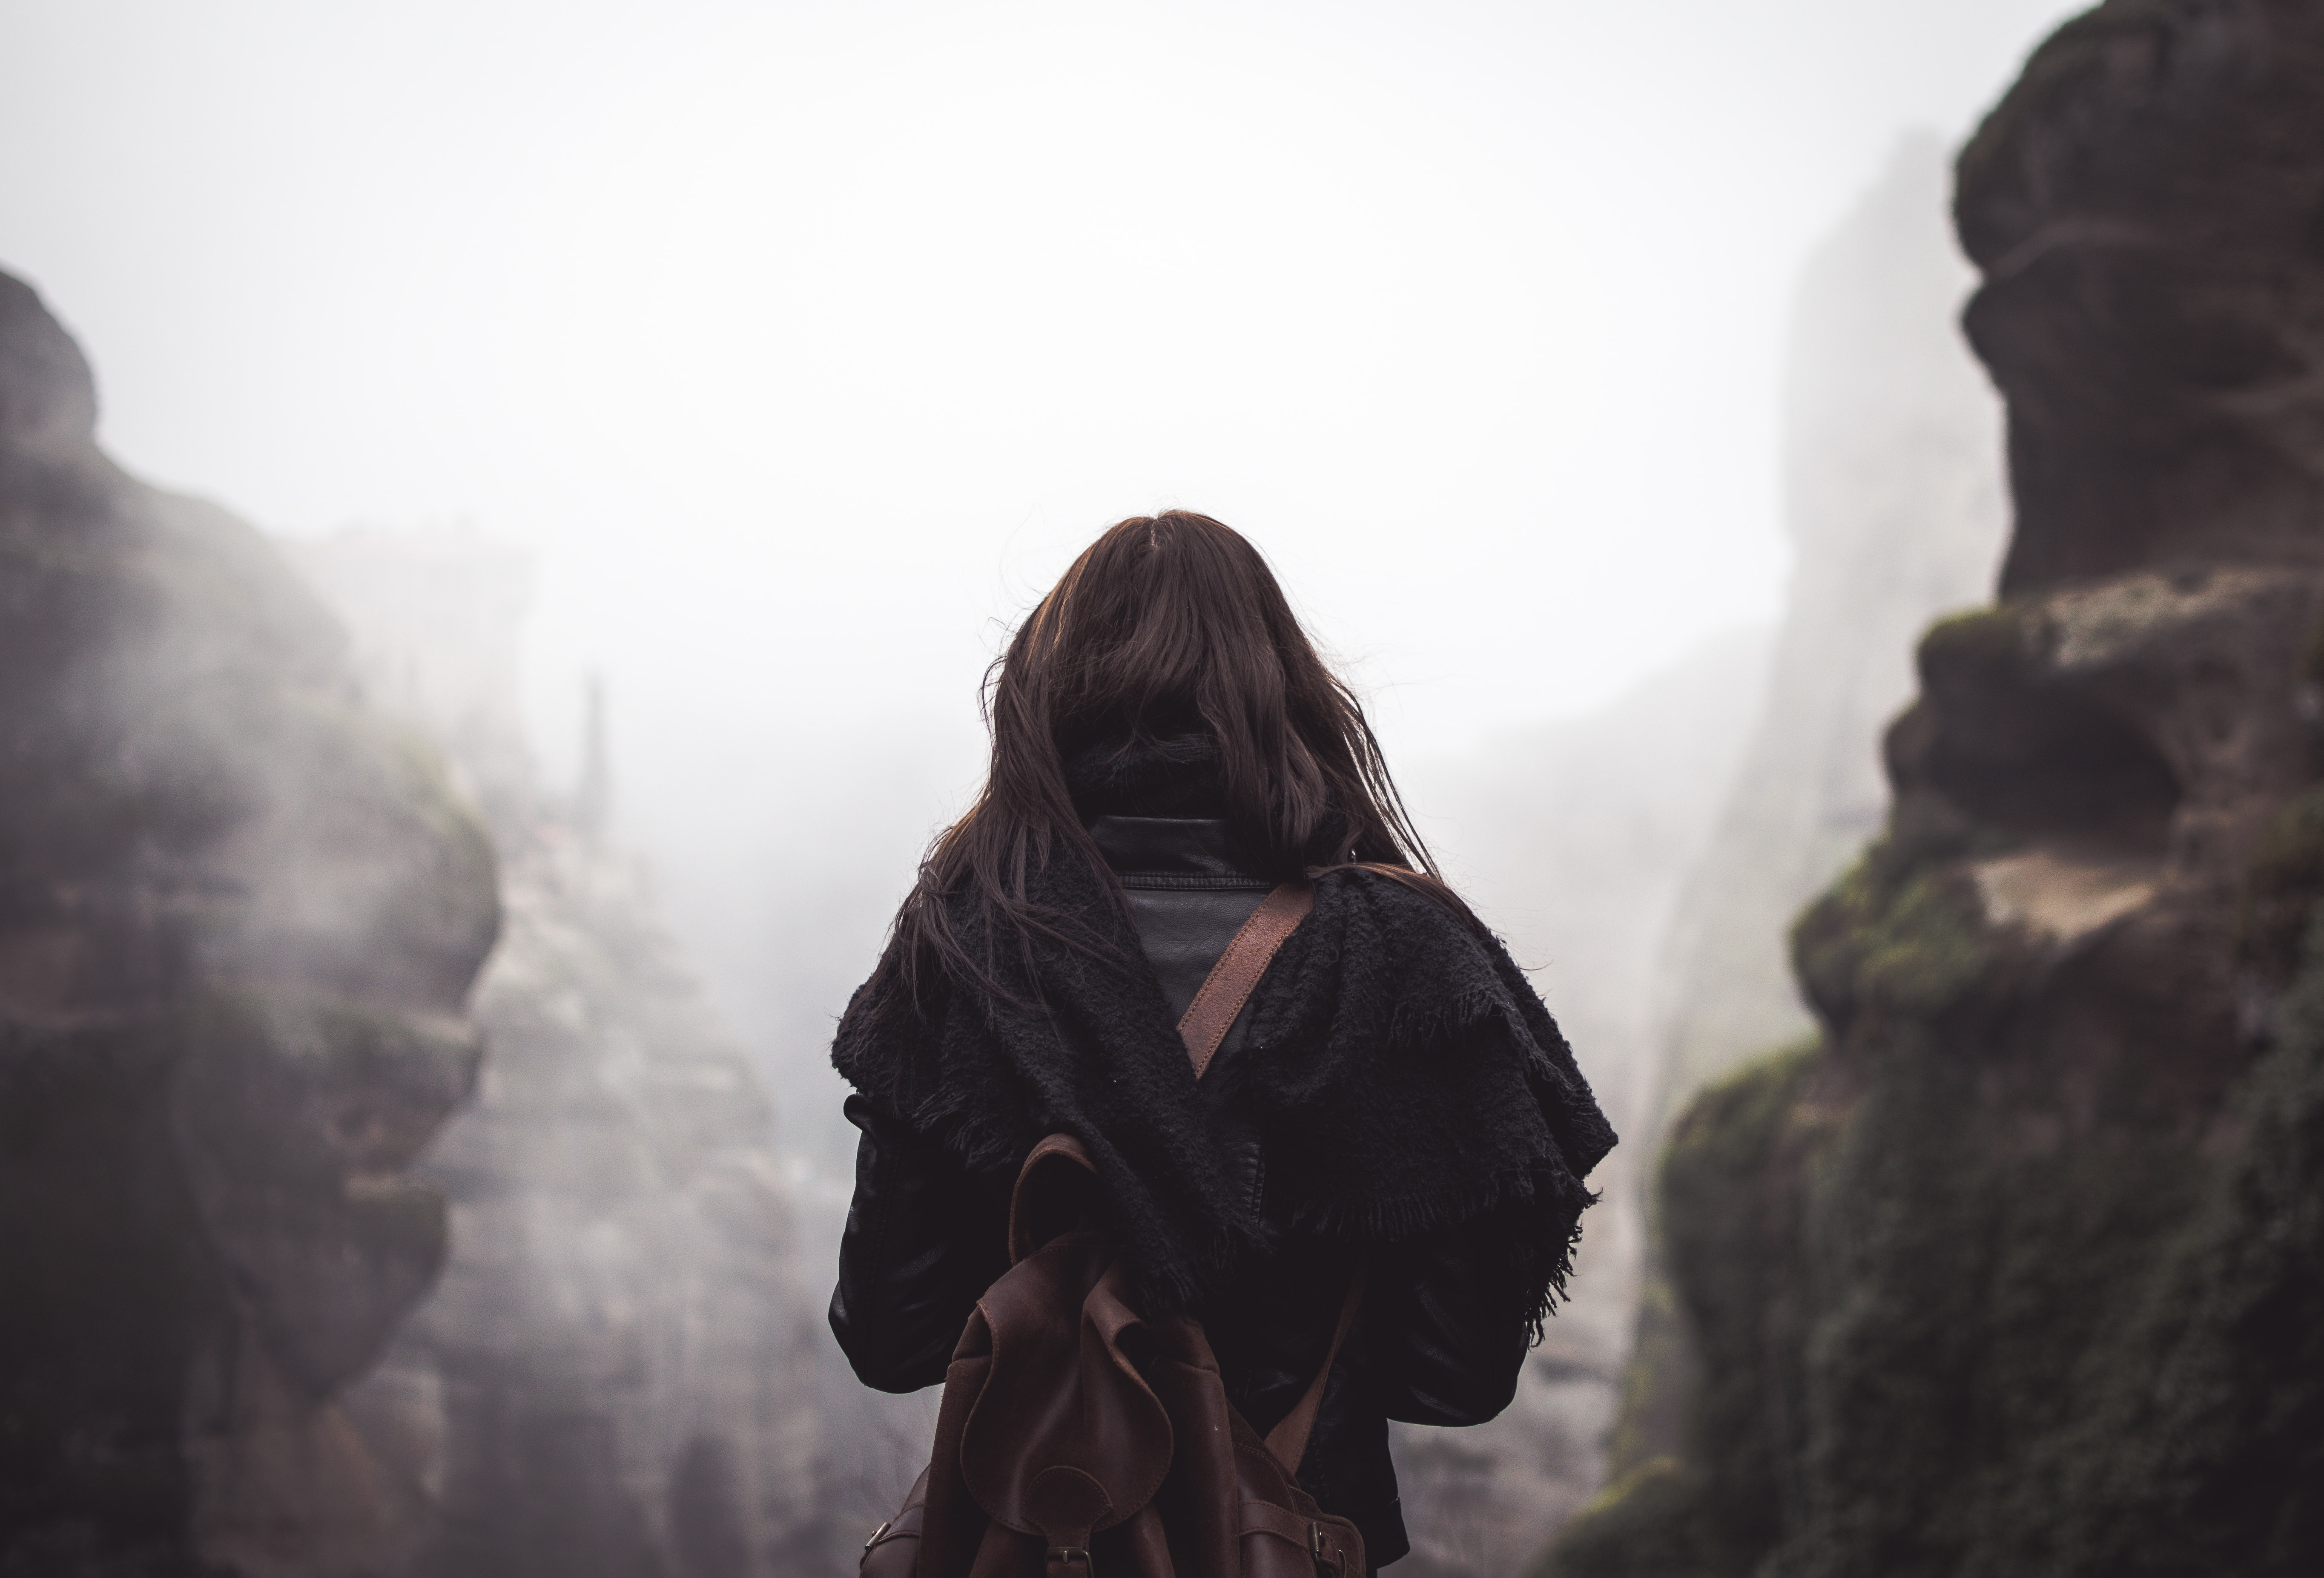 woman carrying brown backpack standing in front of mountains during daytime